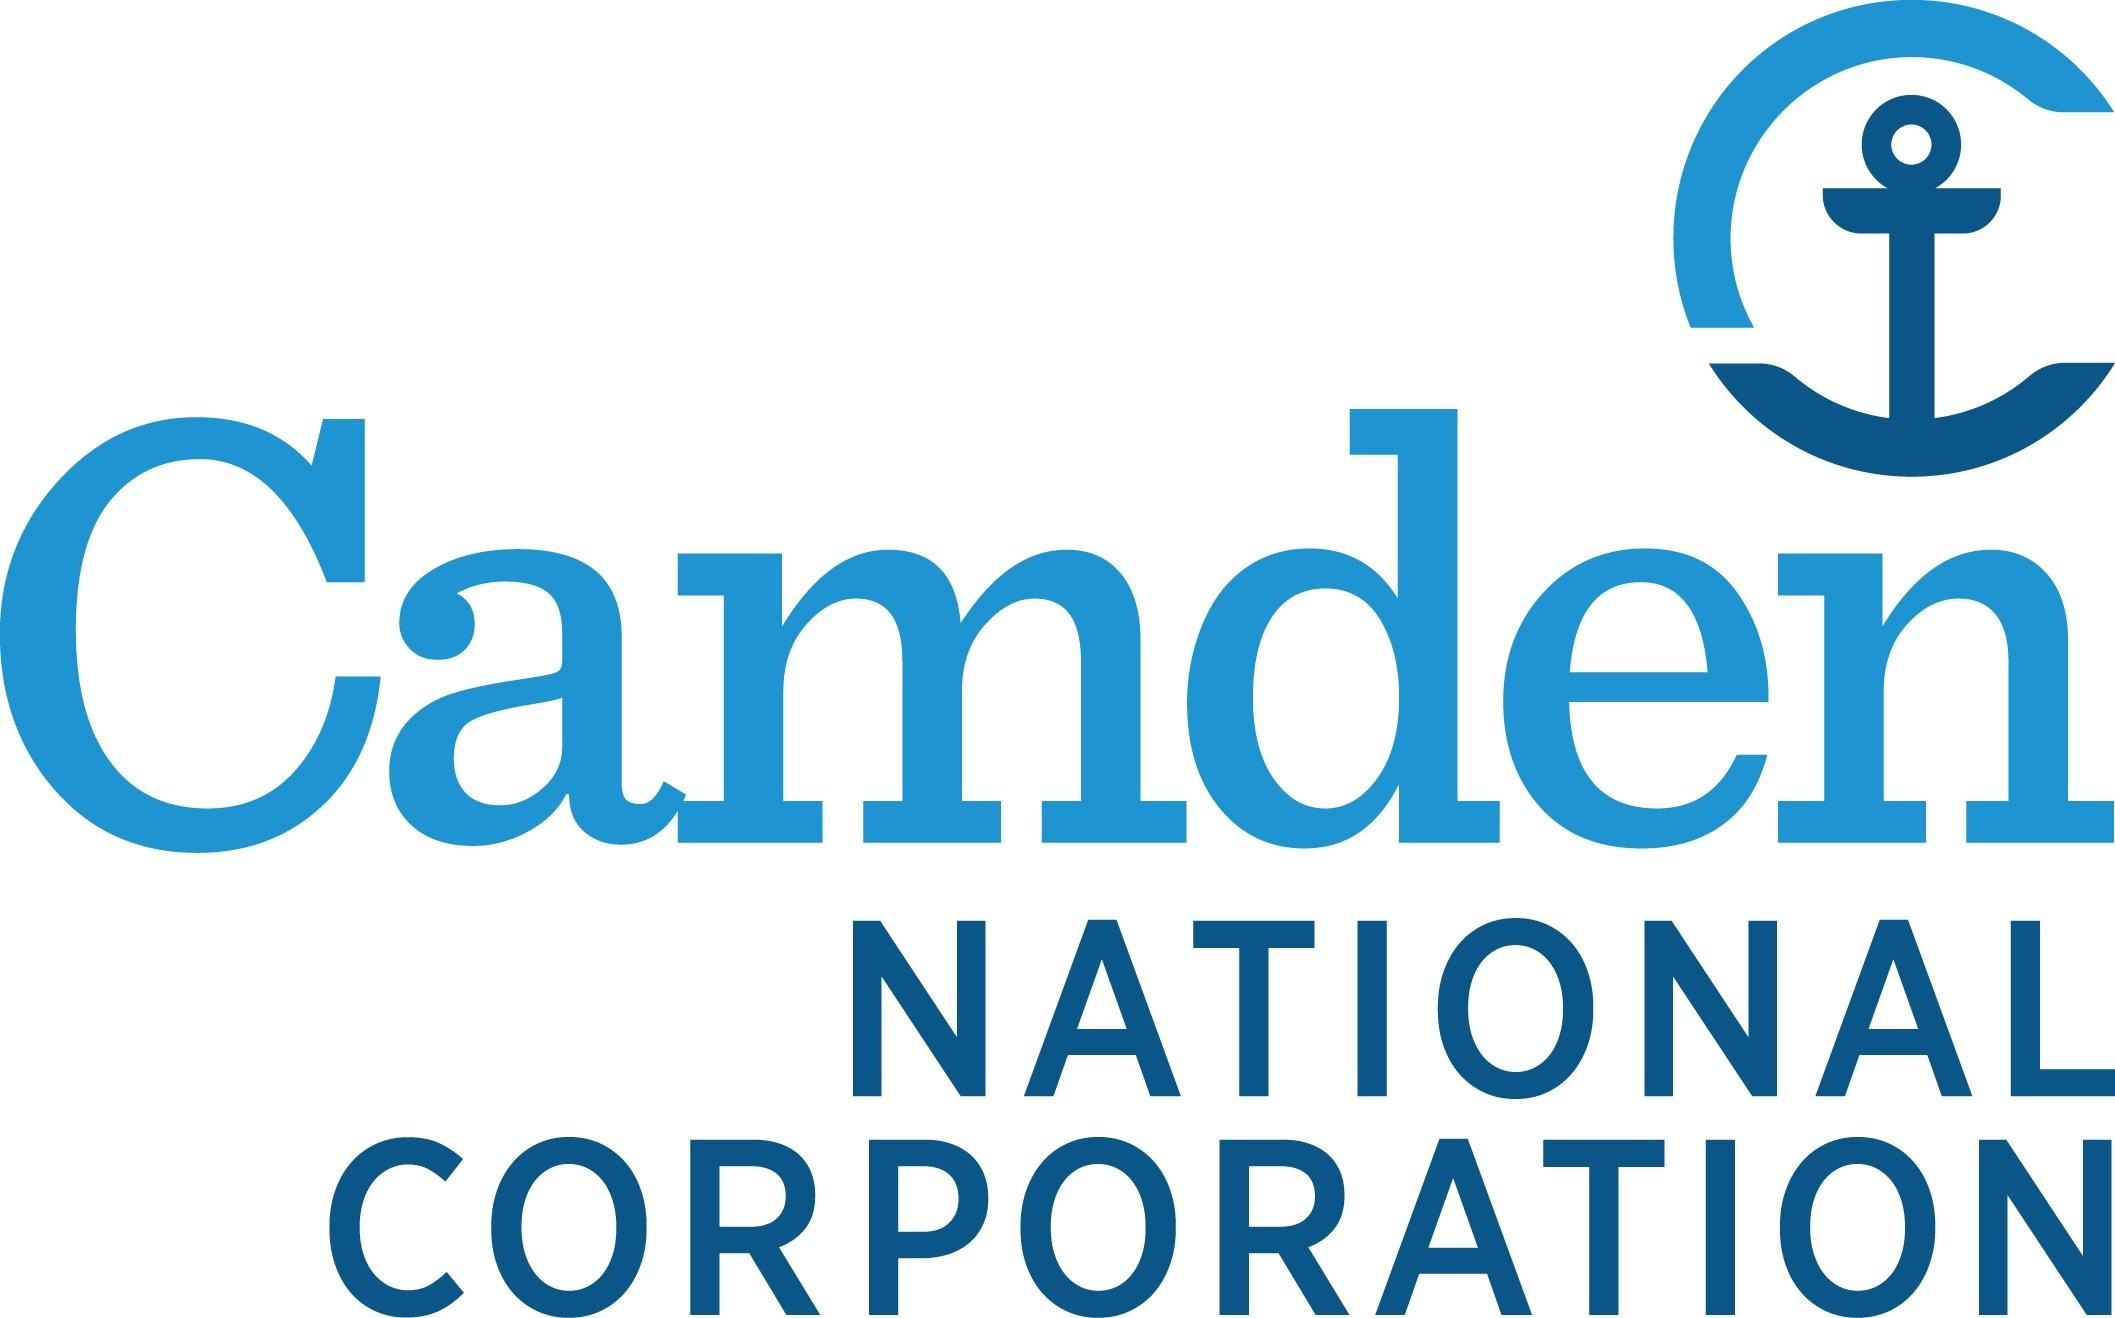 www.camdennational.com.  (PRNewsFoto/Camden National Corporation) (PRNewsfoto/Camden National Corporation)